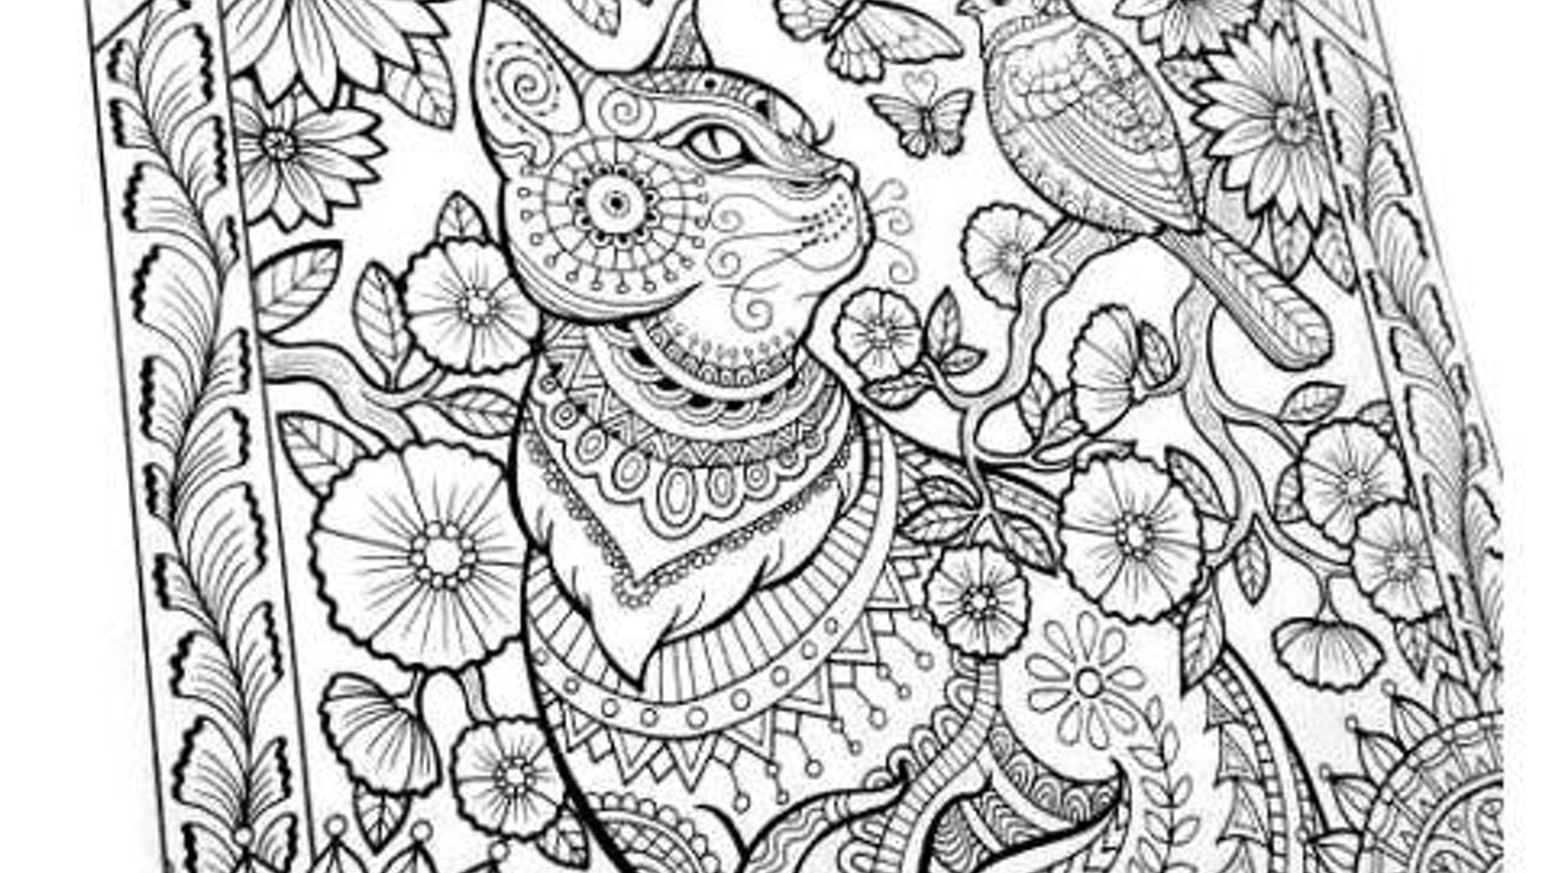 Coloring book for adults, large spiral bound! by Jan Bevins ...